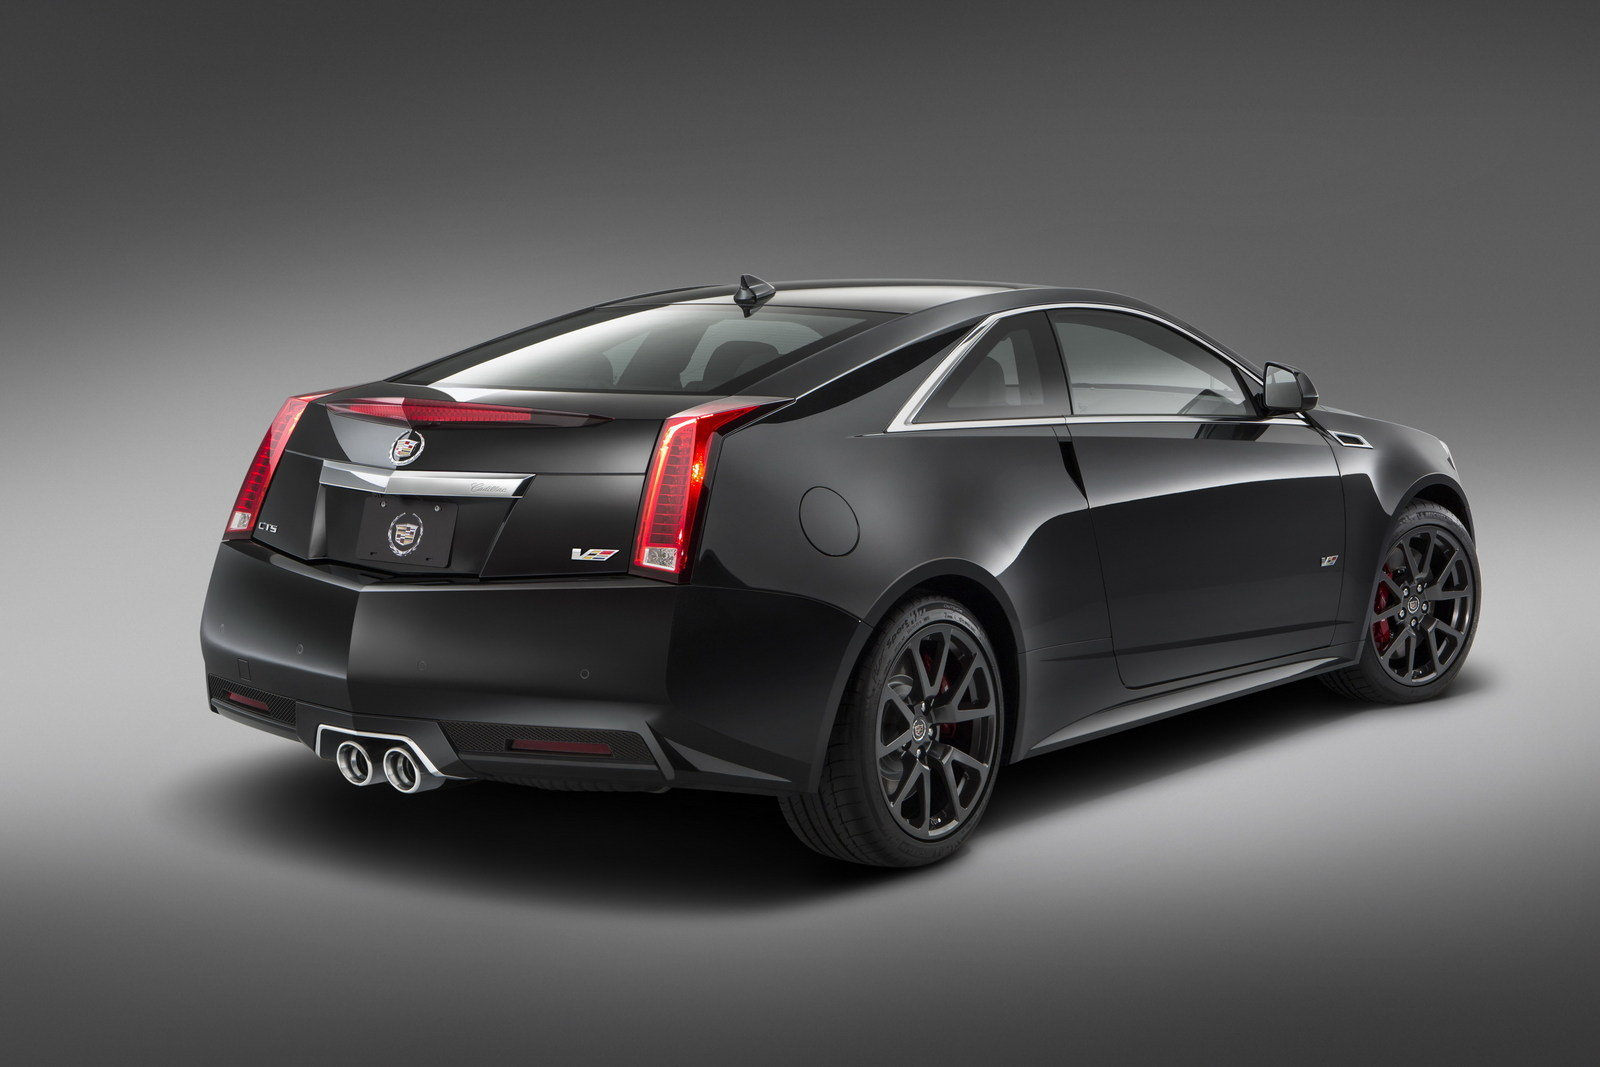 2015 Cadillac Cts-v Coupe #15